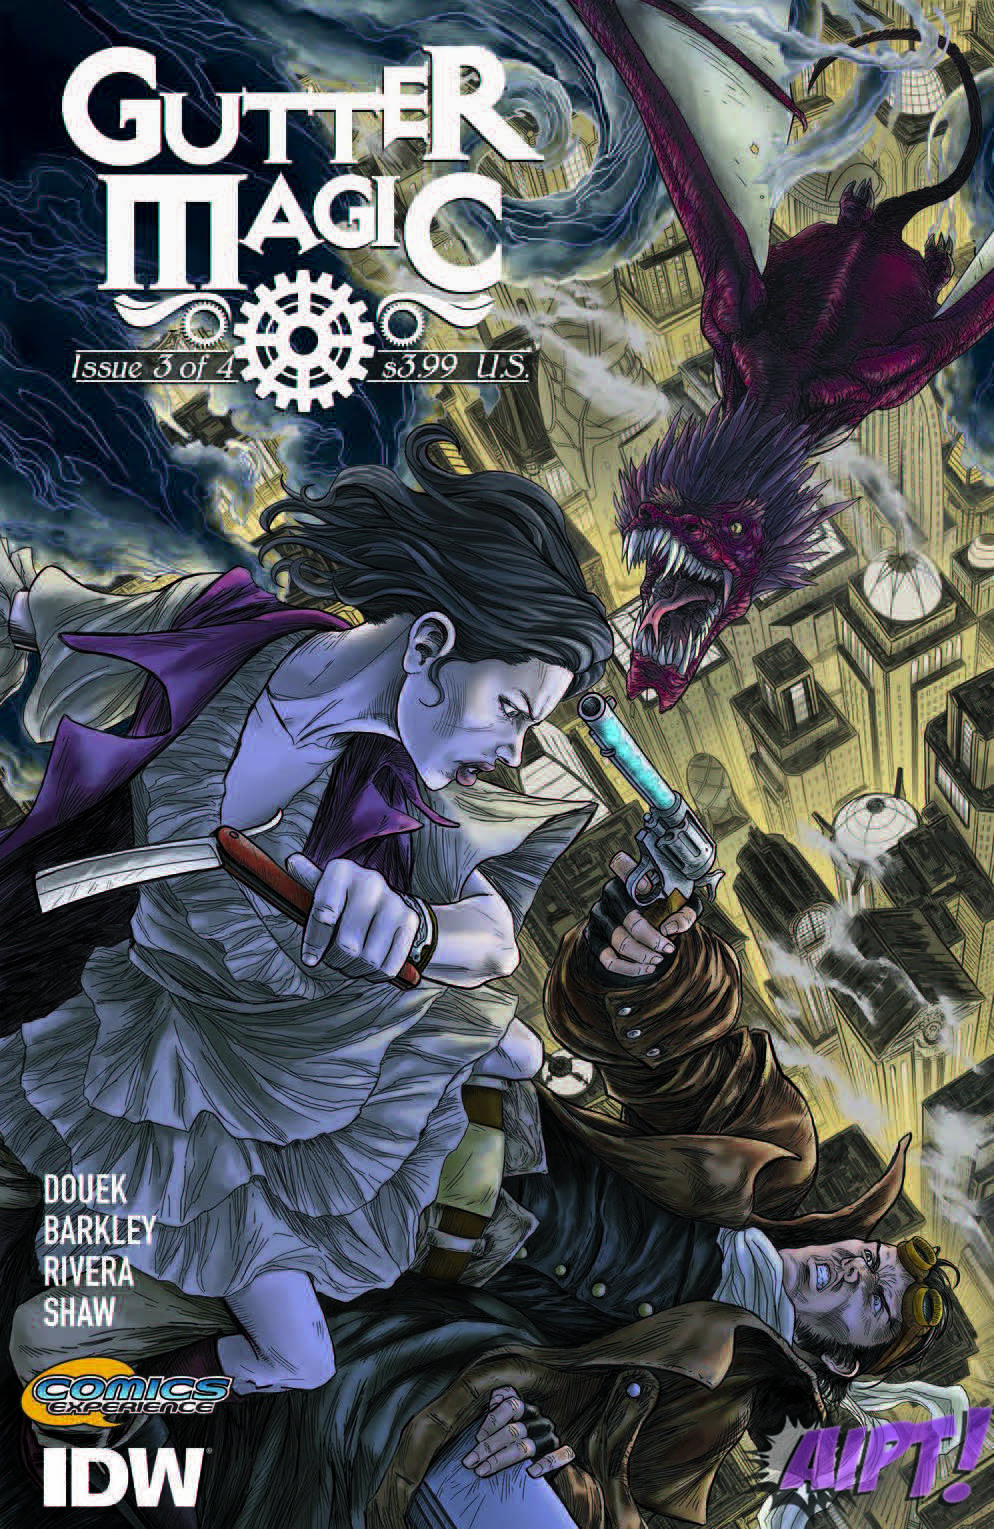 [Exclusive] IDW Preview: Gutter Magic #3